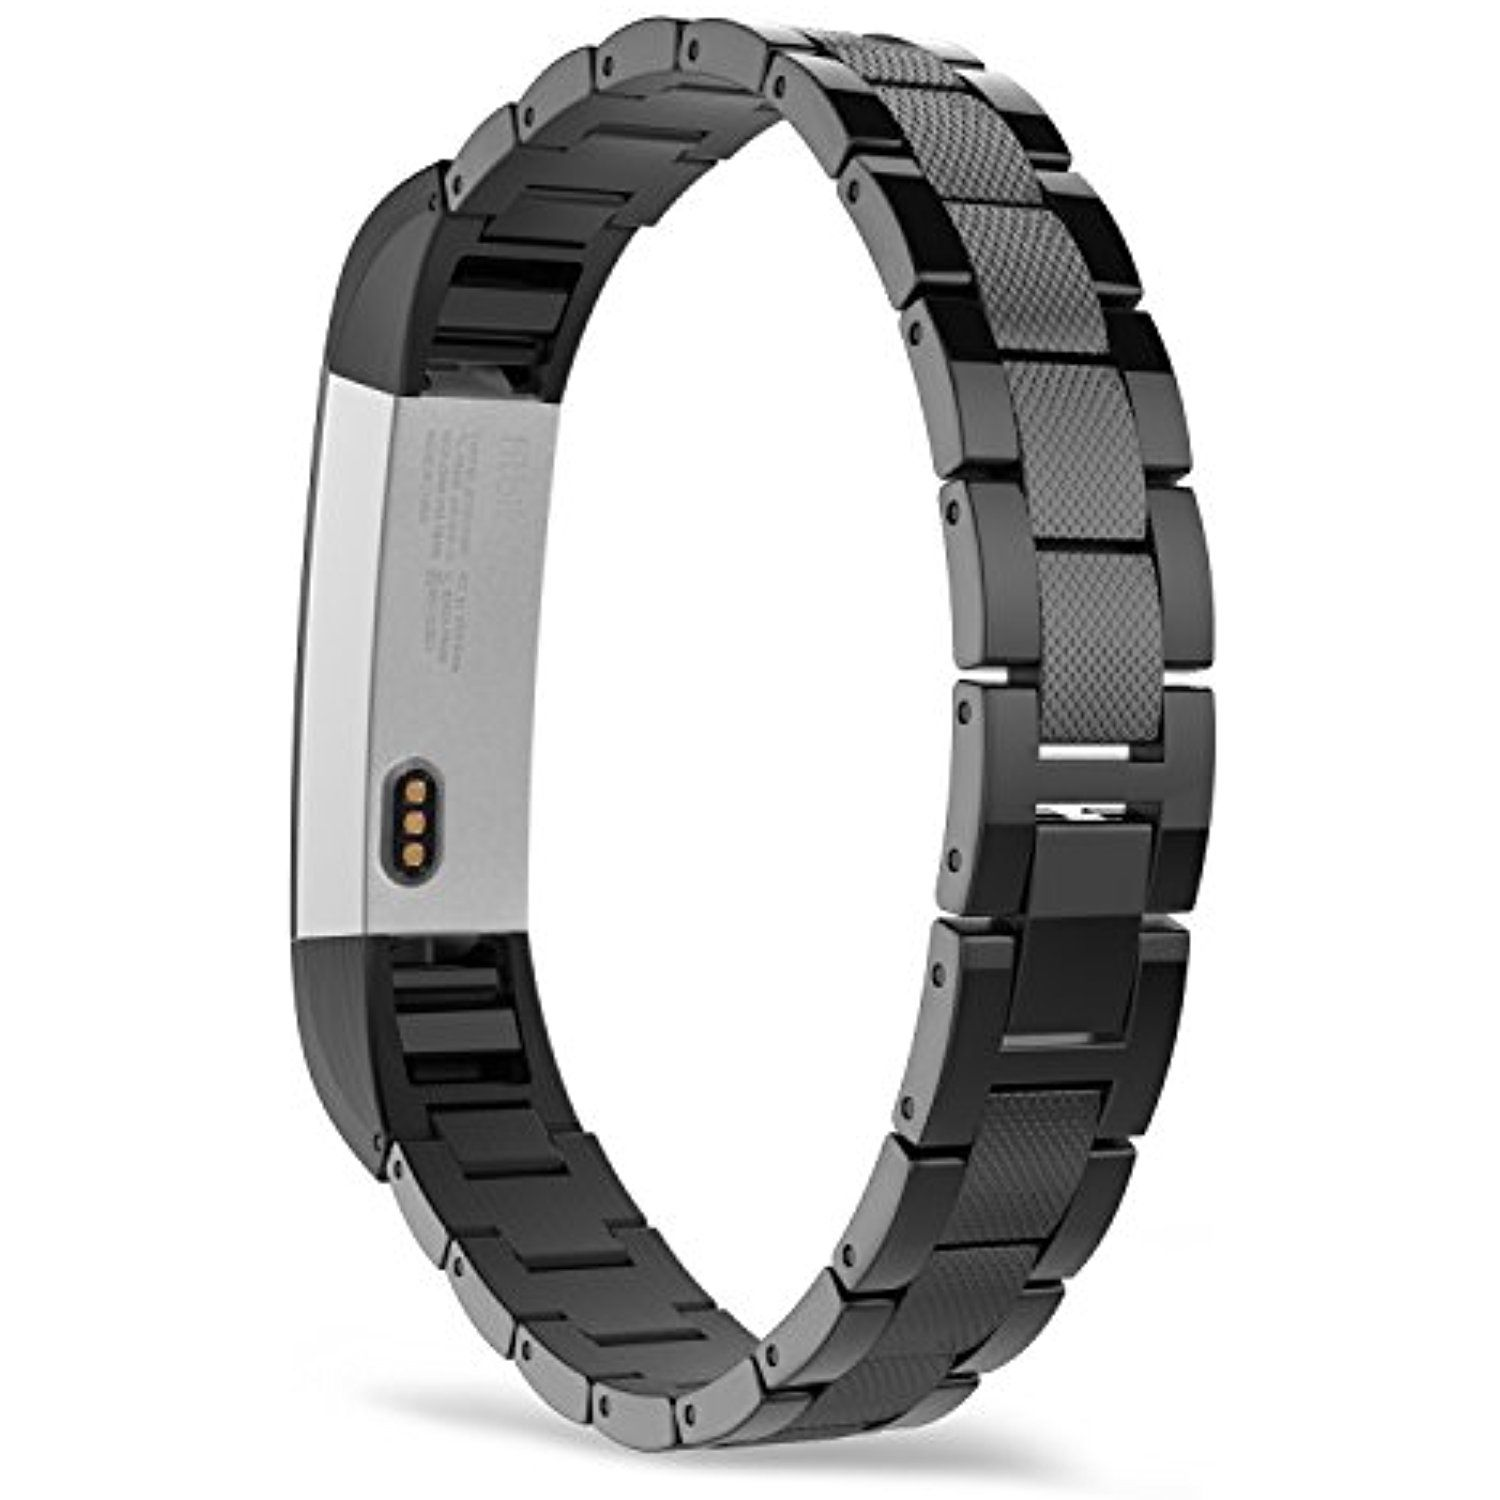 For Fitbit Alta HR Replacement Stainless Steel Wrist Band Bracelet Strap Bangle